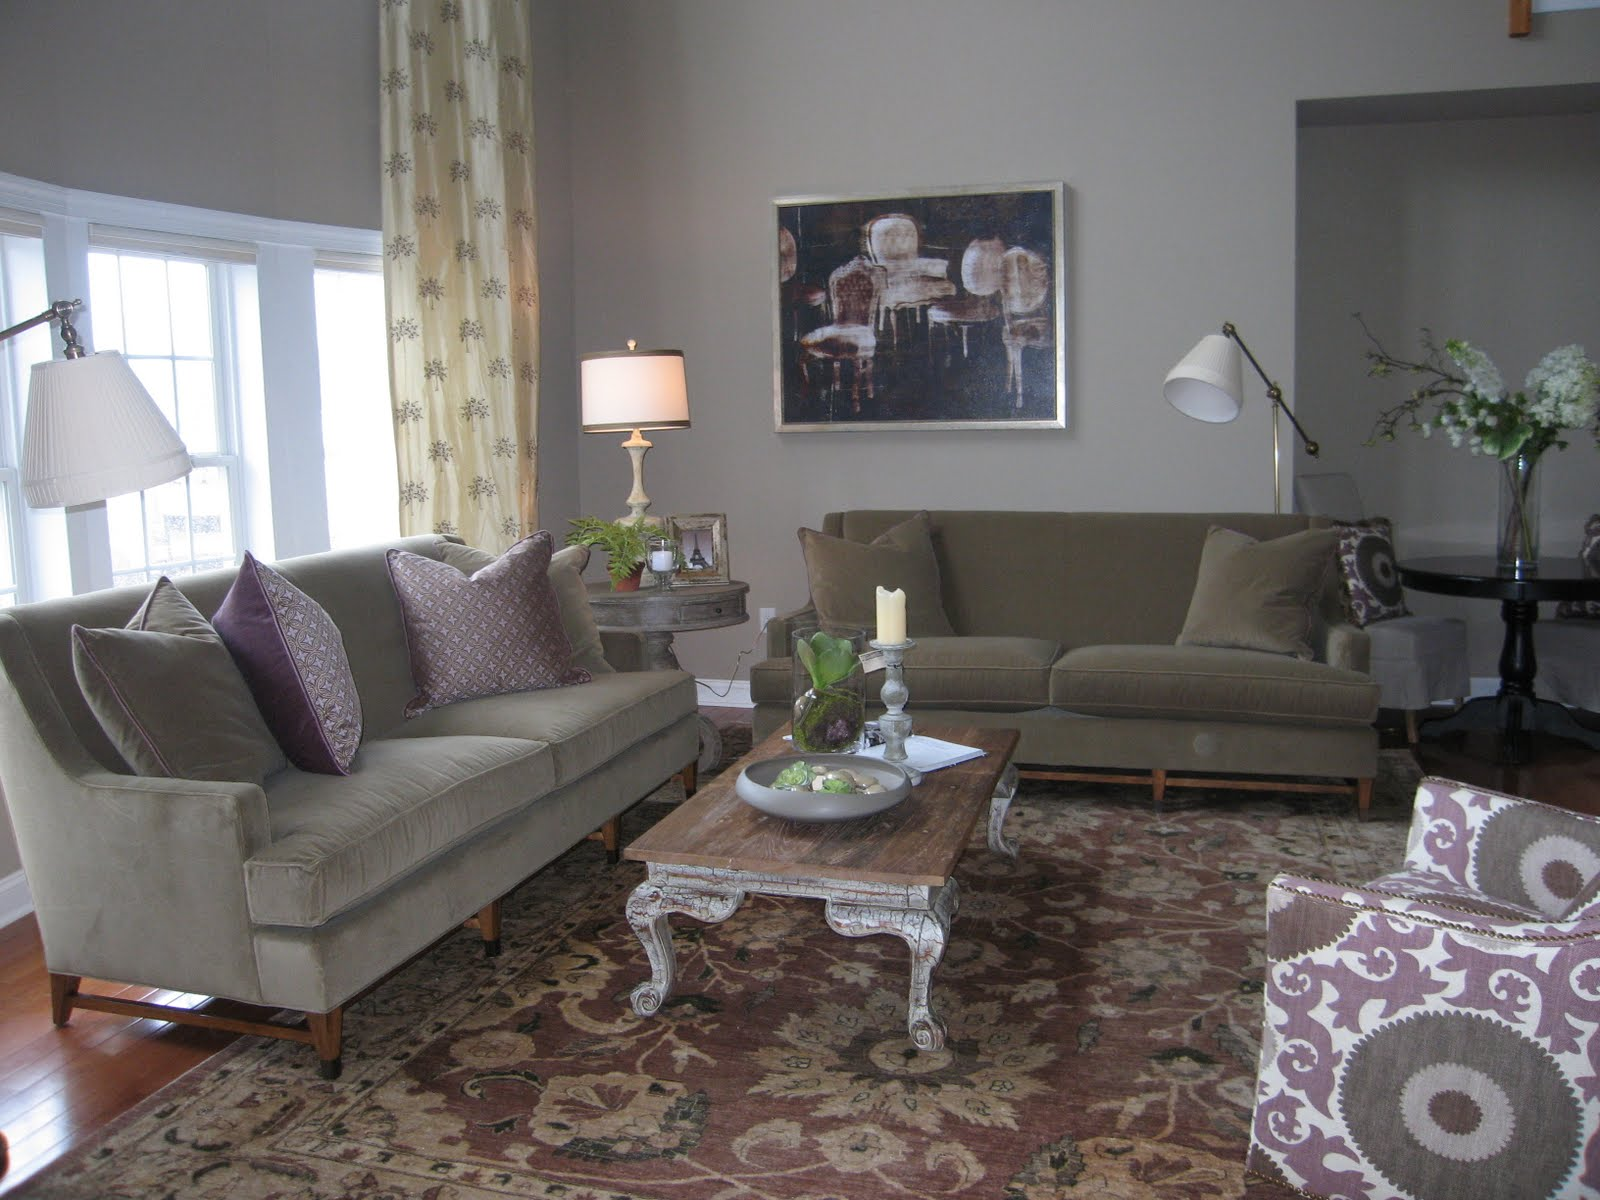 Soft Grey Taupe Stains Grounded The Whole Design Two Matching Sofas Now Told Correct And Interesting Story Married With Graphic Print Chair Of